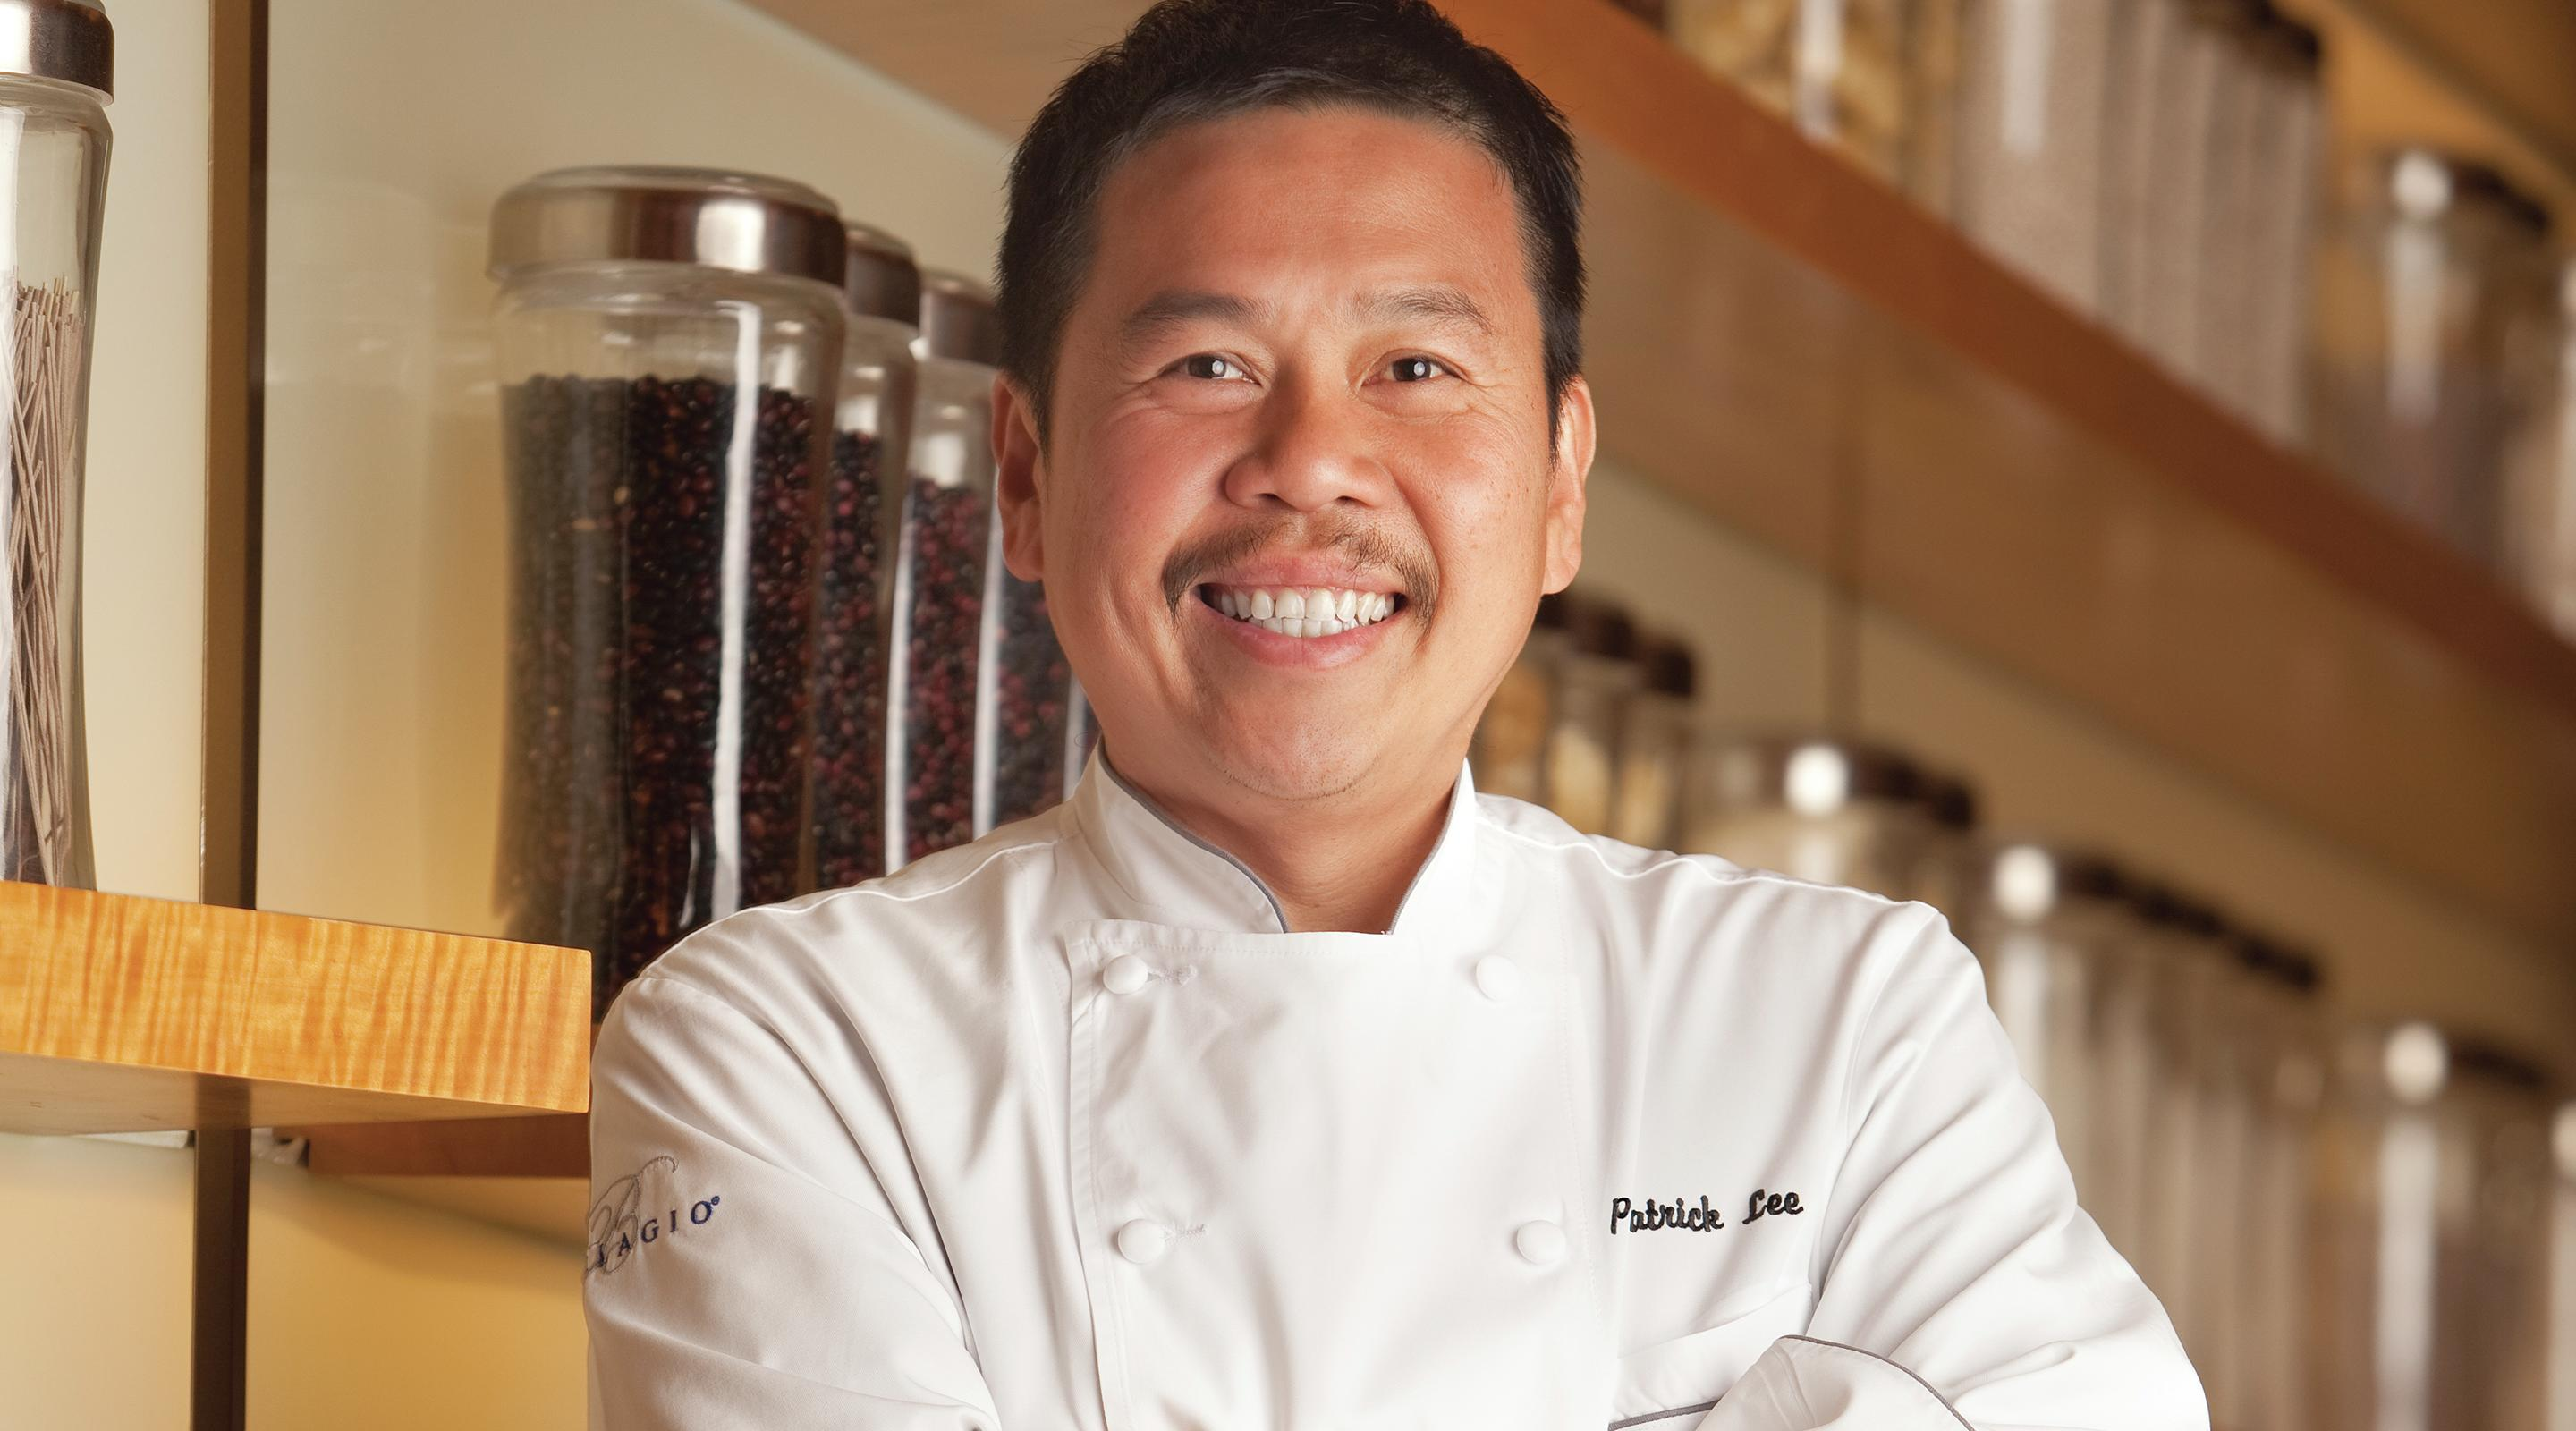 Executive Chef Patrick Lee